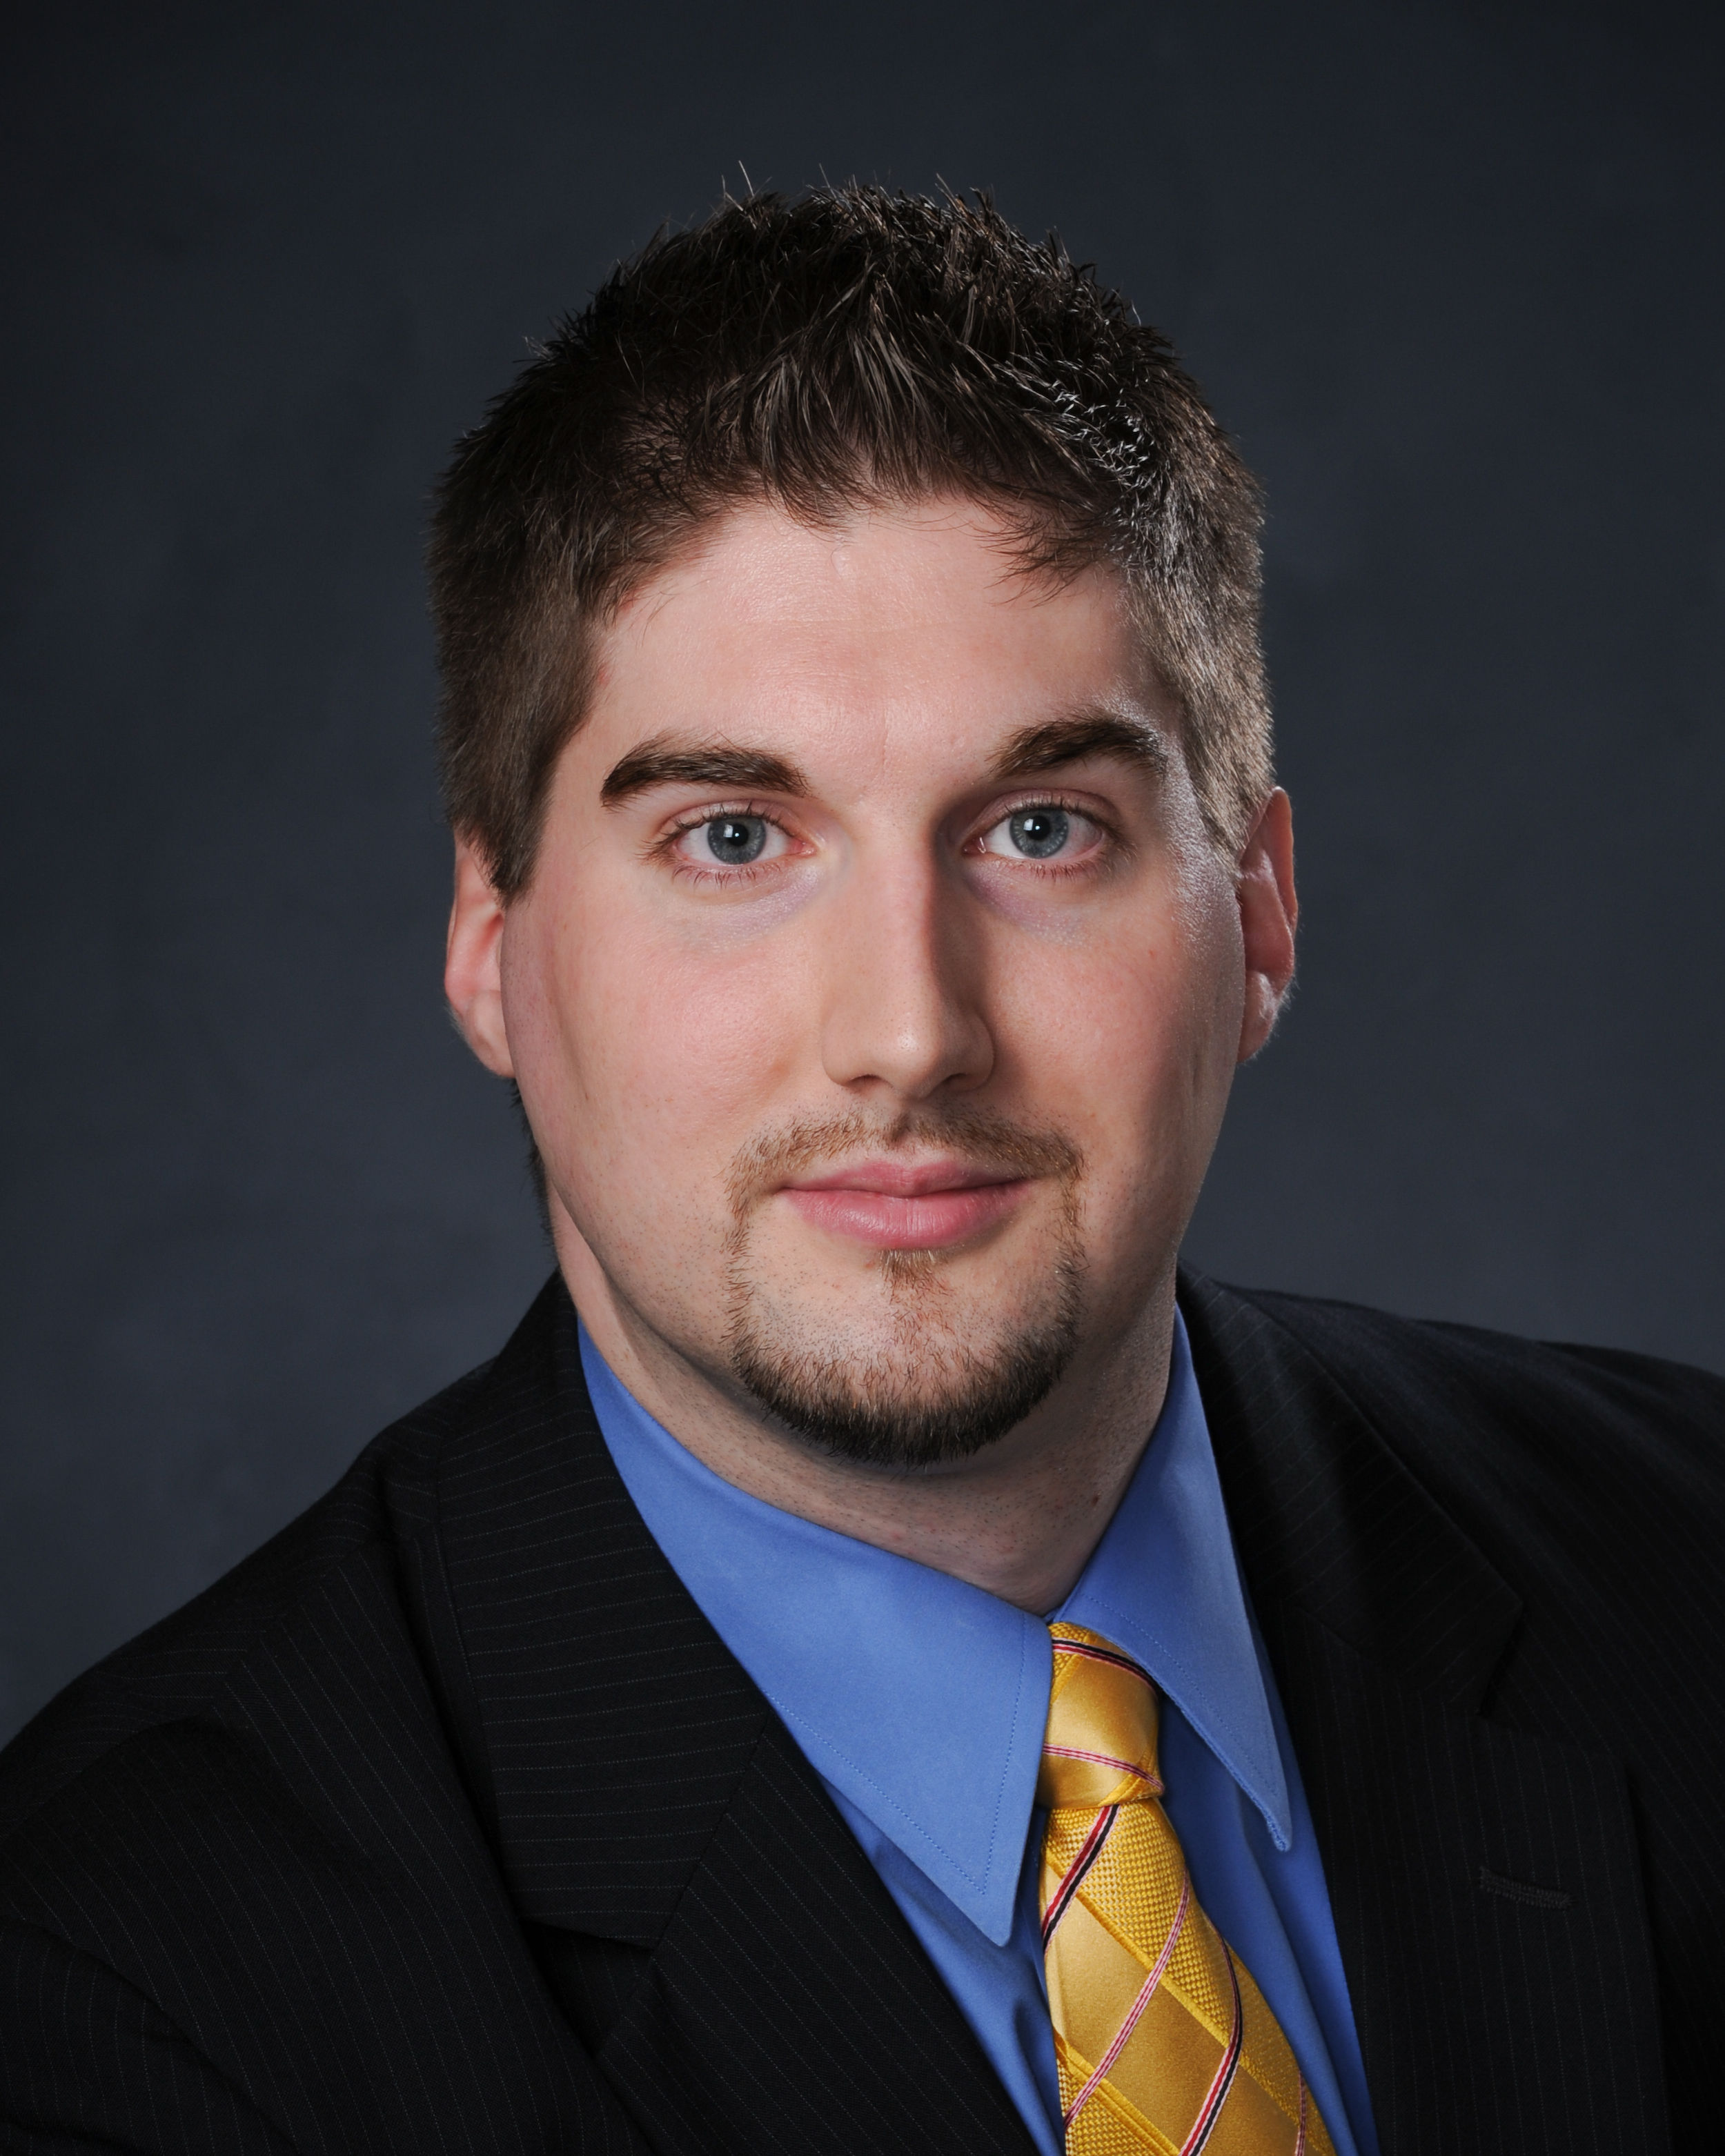 Justin Buttrick, financial advisor Lewisburg PA